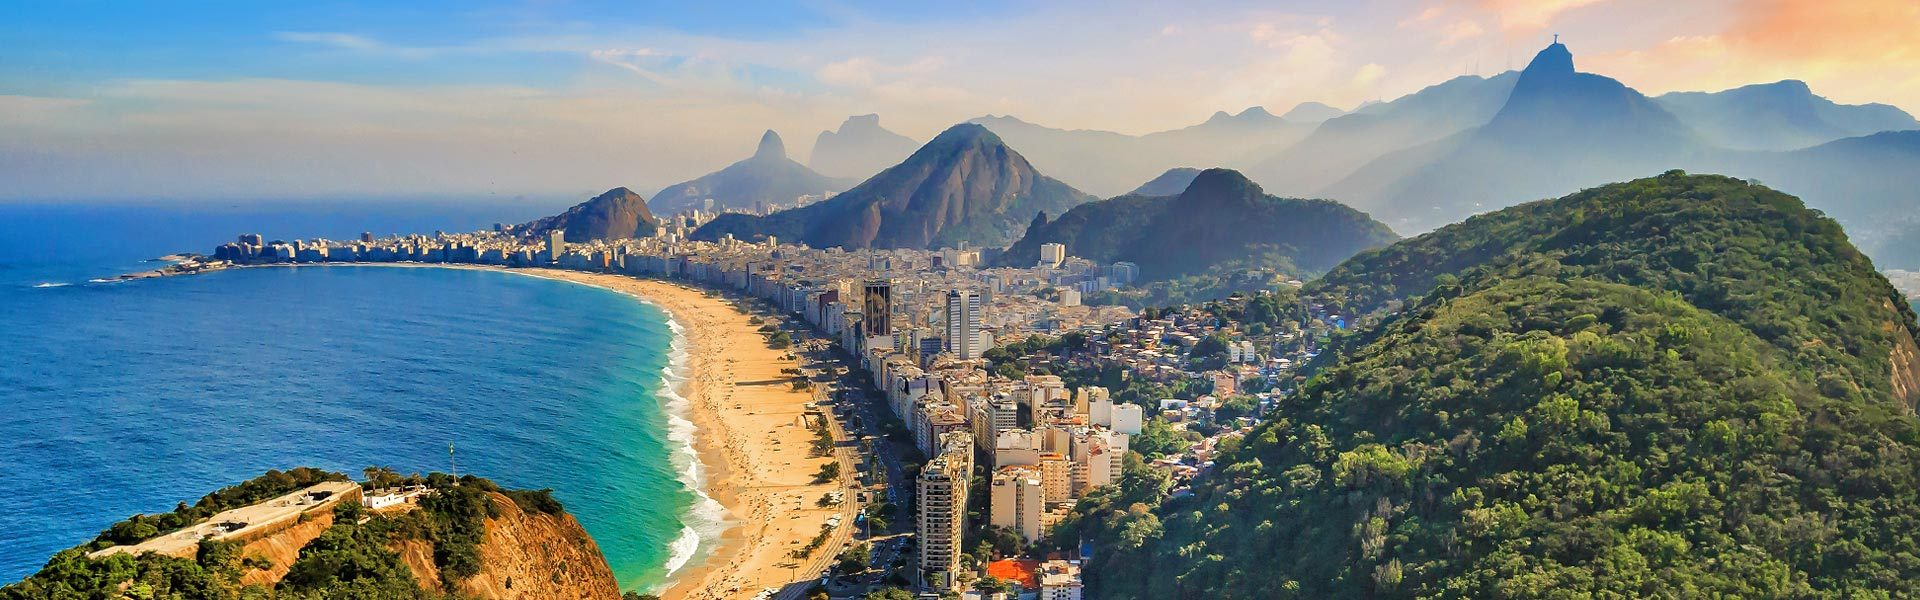 Aerial view of Copacabana with ocean, beach, mountains and buildings in Rio de Janeiro, Brazil